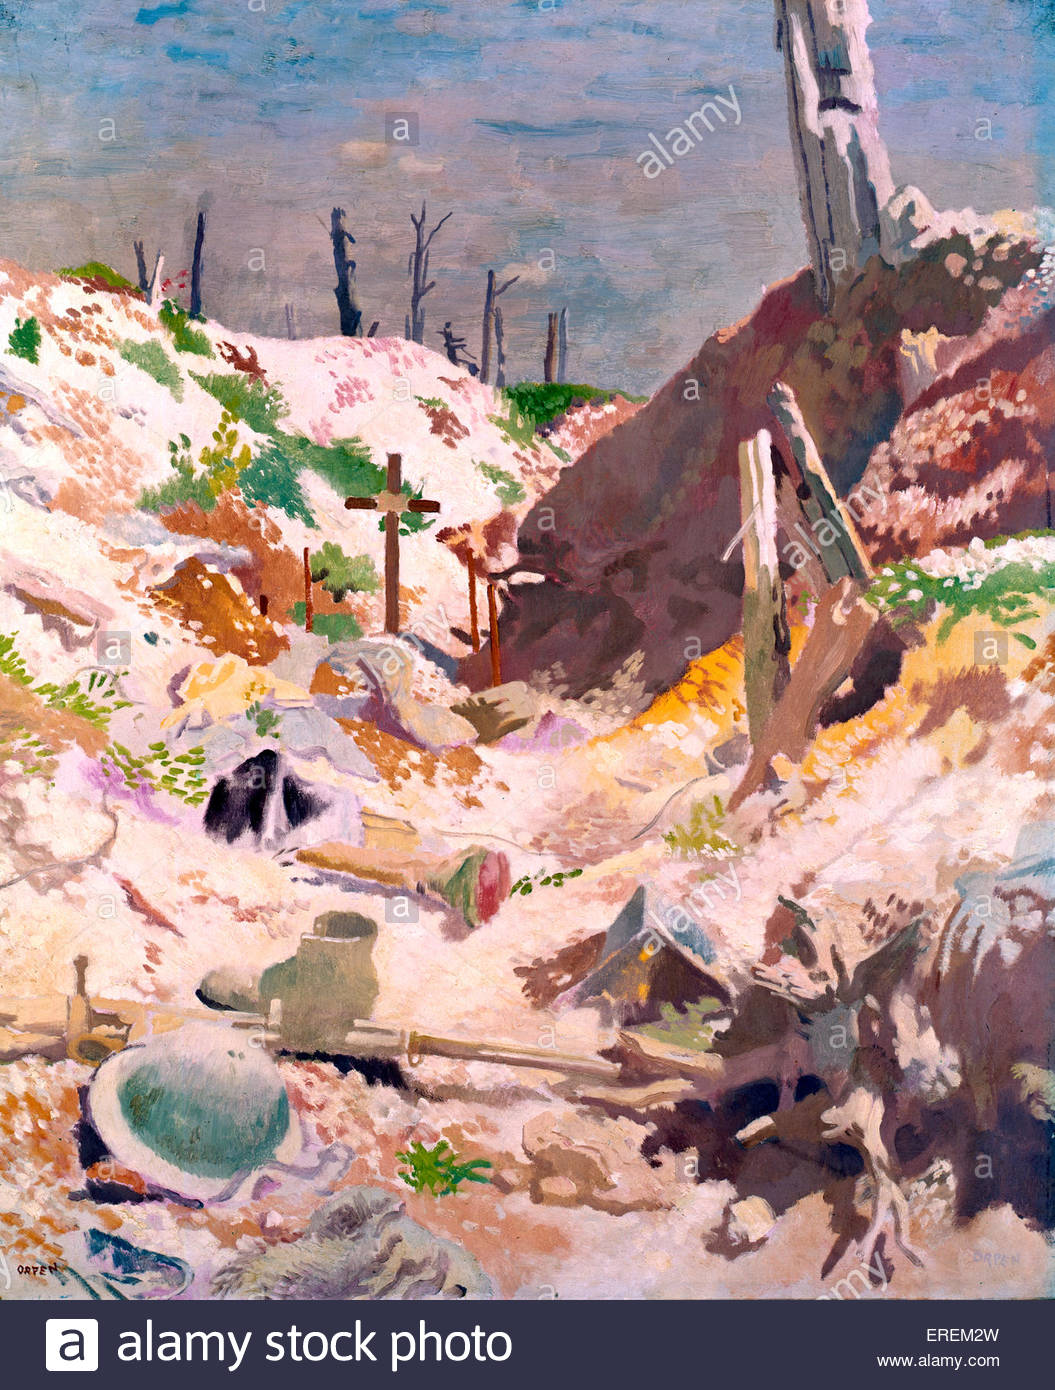 A Grave in a Trench  by Sir William Orpen, 1917 (painting).  Grave with wooden marker cross. Helmet, boot and rifle - Stock Image